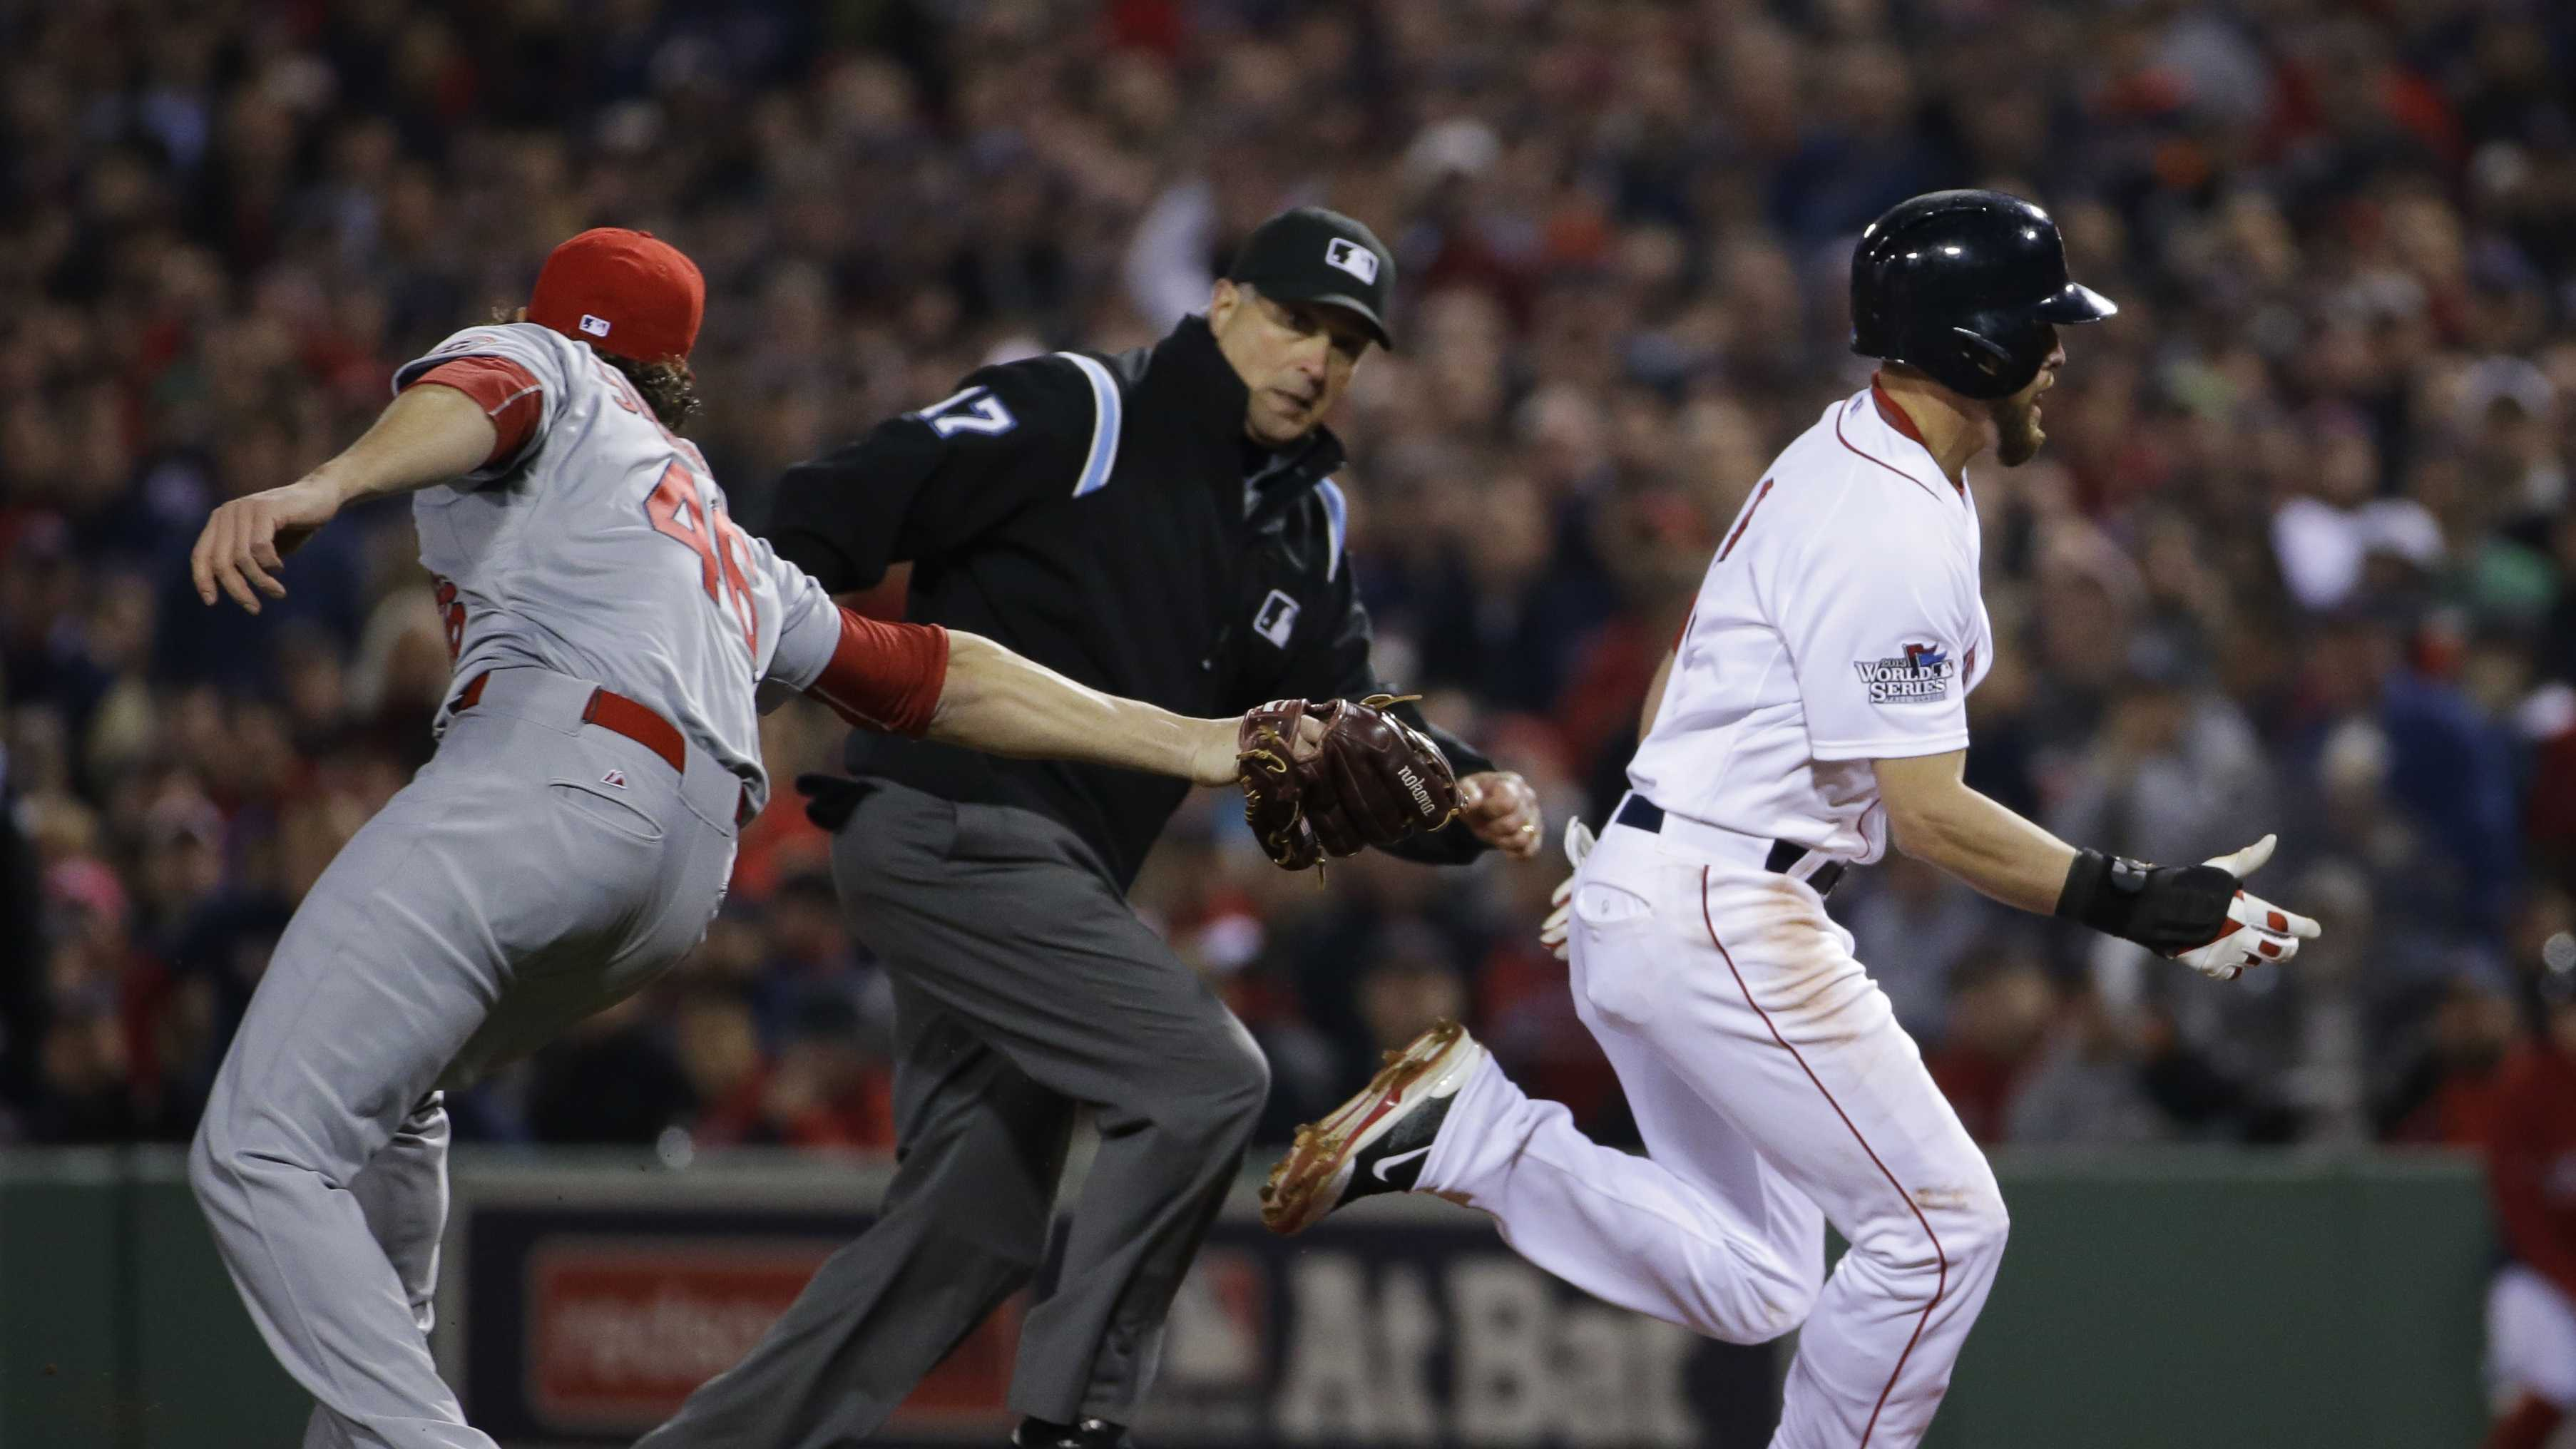 St. Louis Cardinals relief pitcher Kevin Siegrist, left, misses the tag on Boston Red Sox center fielder Jacoby Ellsbury (2) he makes it back to first on a run down during the fifth inning of Game 6 of baseball's World Series Wednesday, Oct. 30, 2013, in Boston.